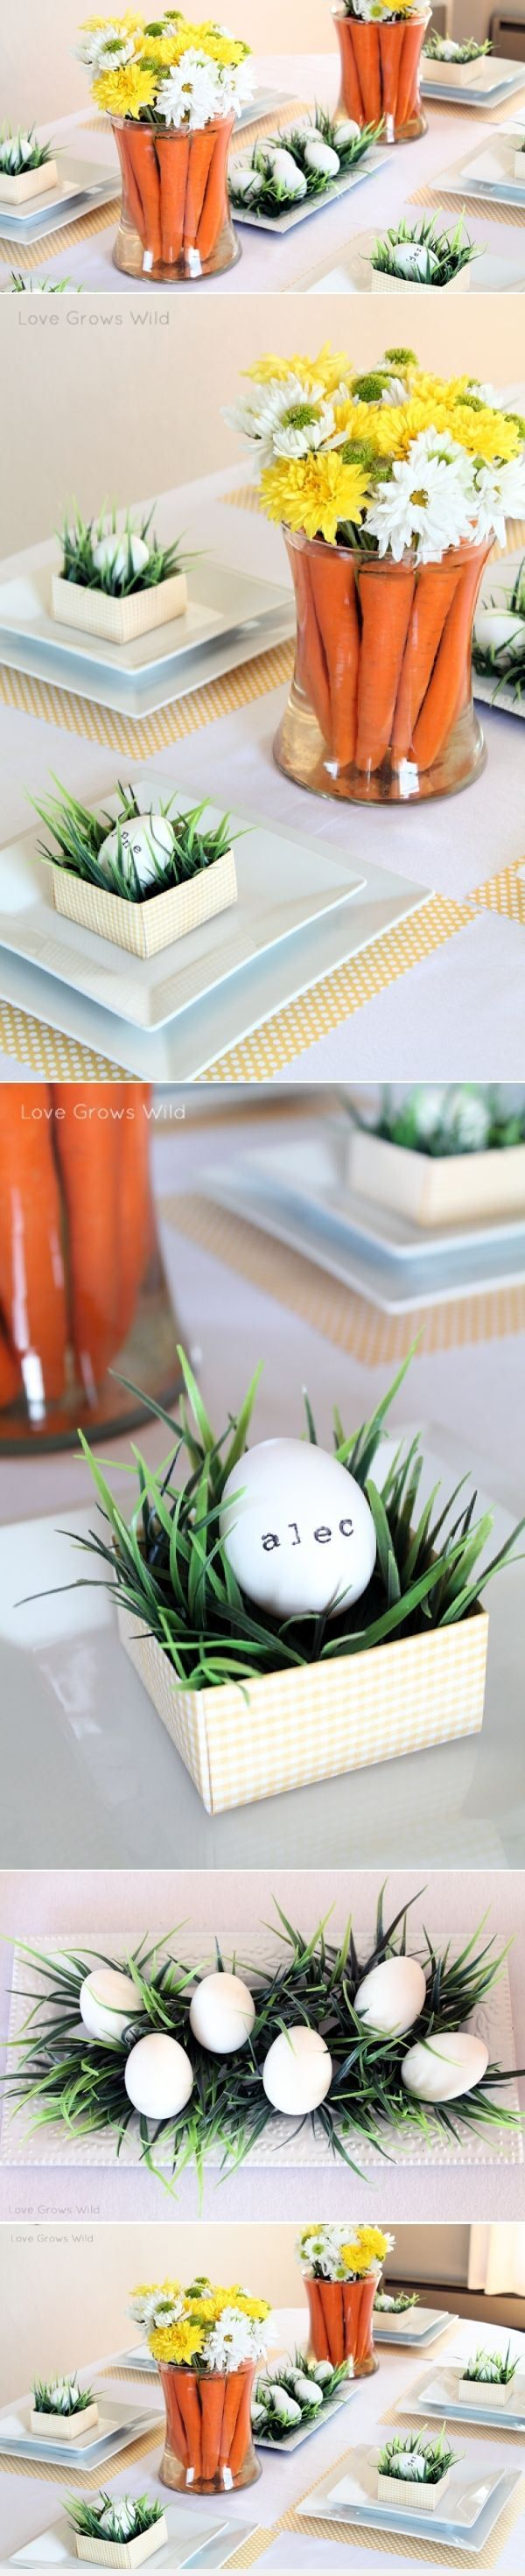 Cutest Easter Tablescape!